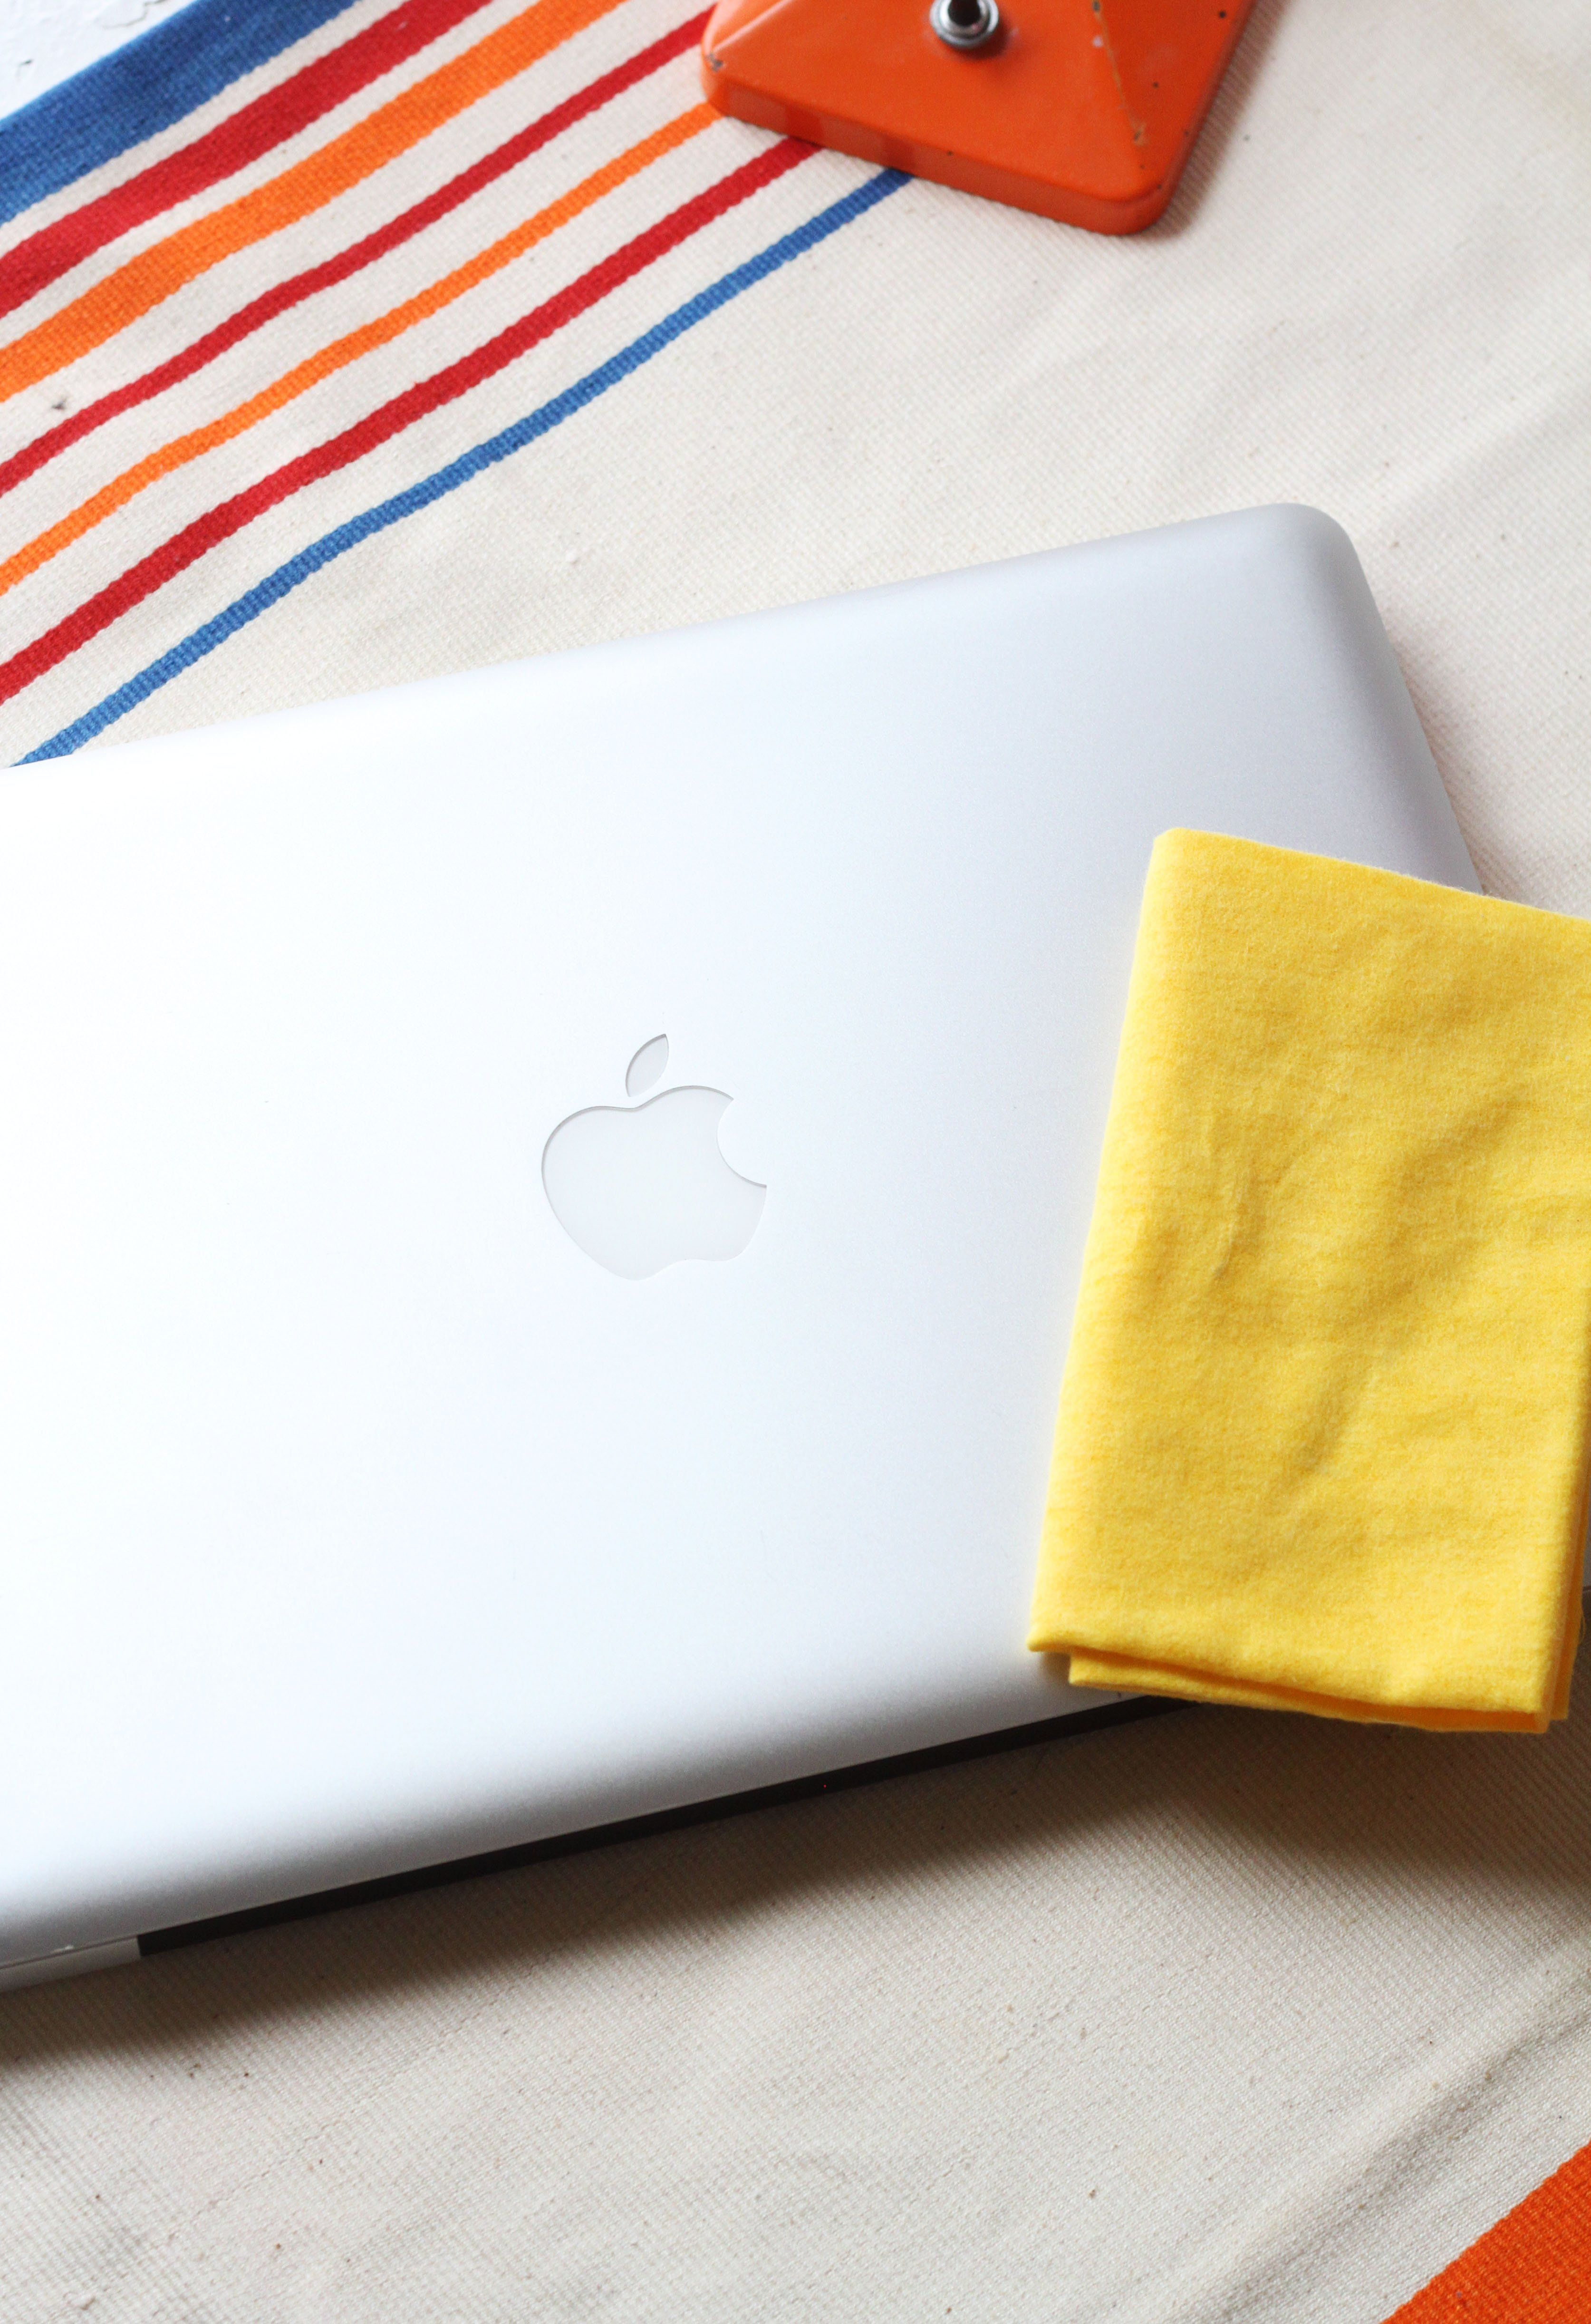 How to clean your computer screen without leaving streaks